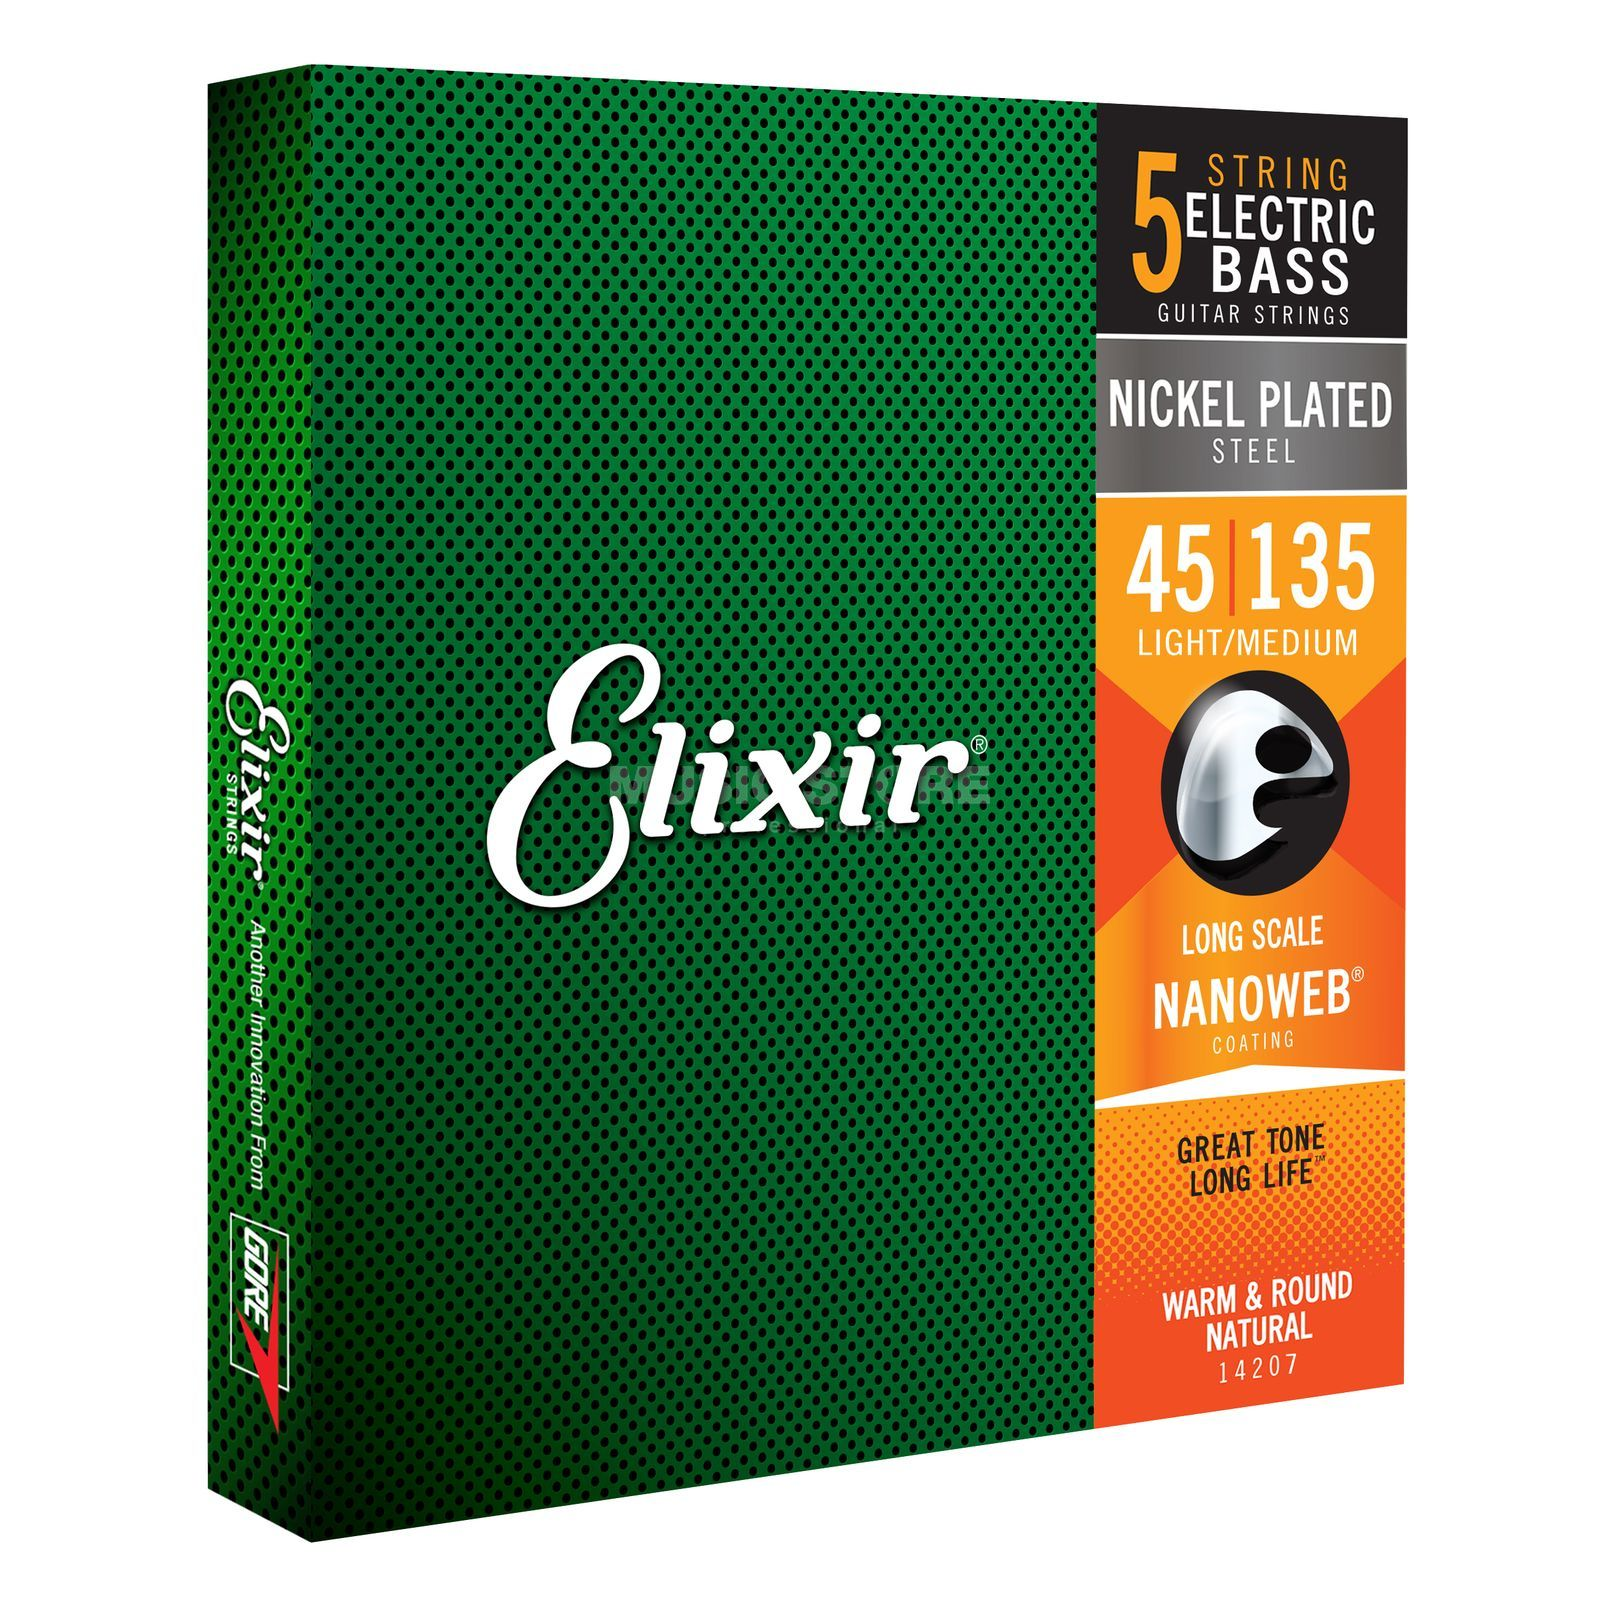 Elixir 5er Bass 45-135 NanoWeb 14207 Light/Medium Immagine prodotto